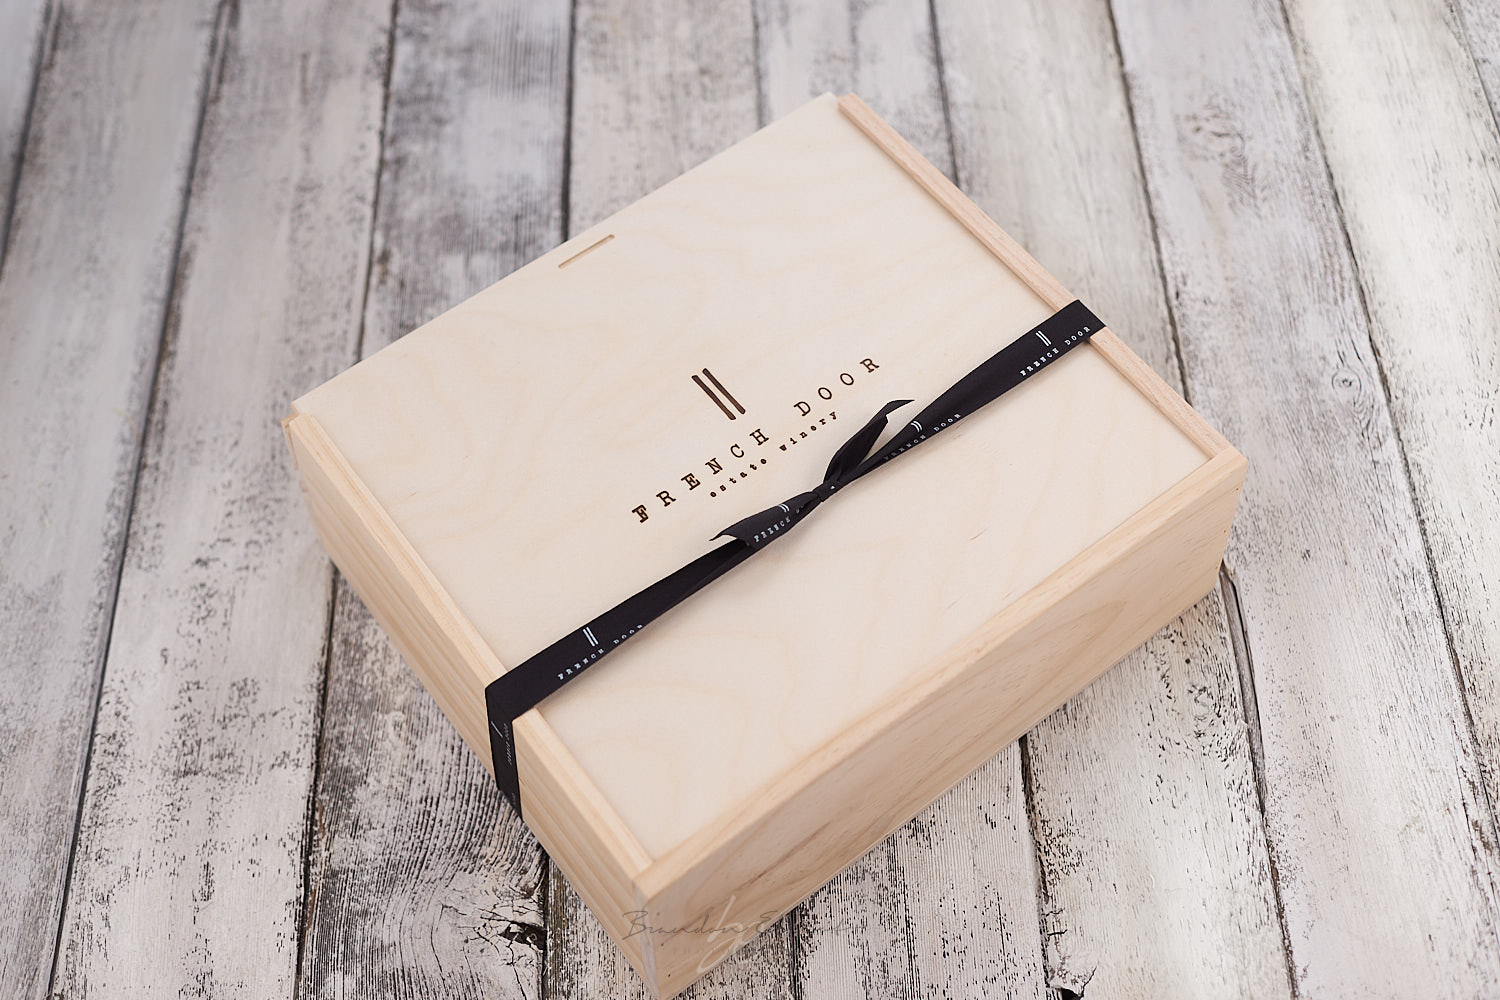 French Door Winery gift box by osoyoos photographer brandon elliot